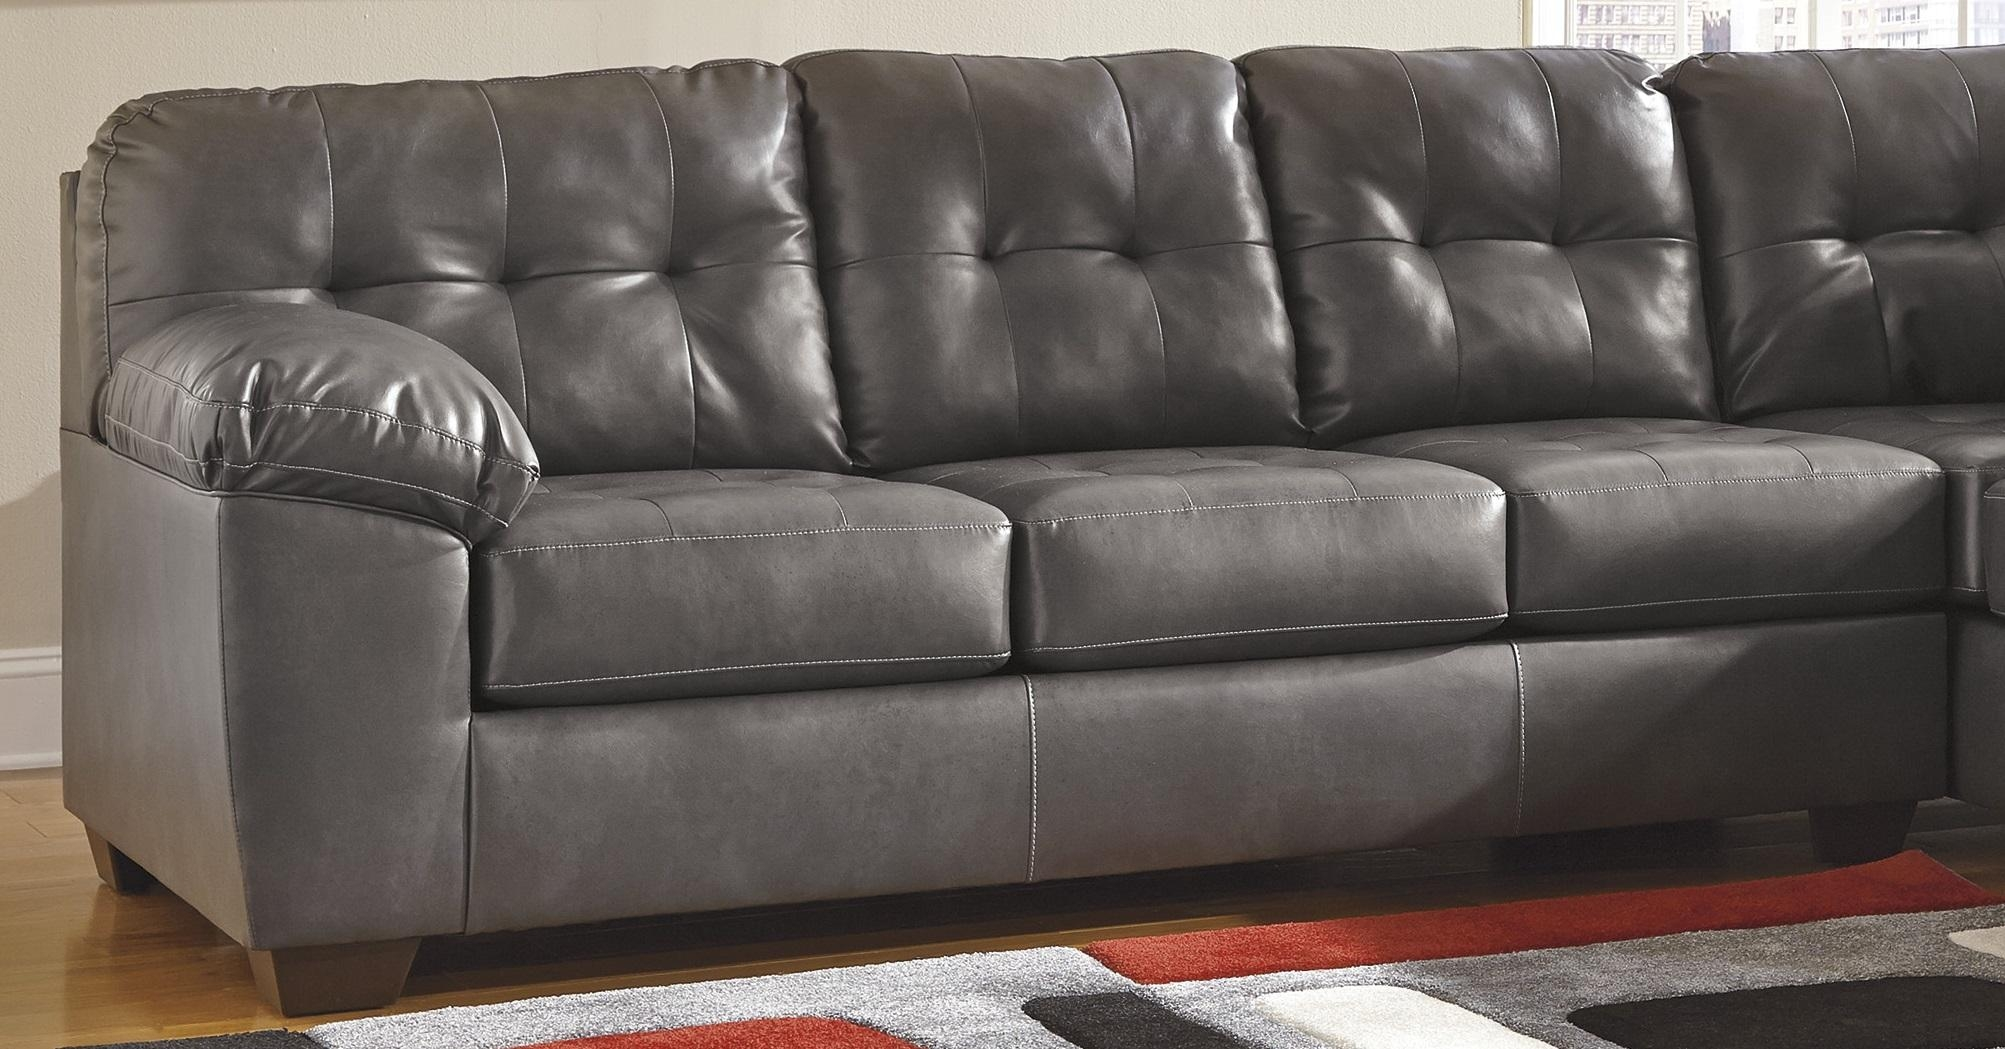 Sofas Center : Grey Leather Sofa Recliner Ashley Gray And Within Charcoal Grey Leather Sofas (View 17 of 20)